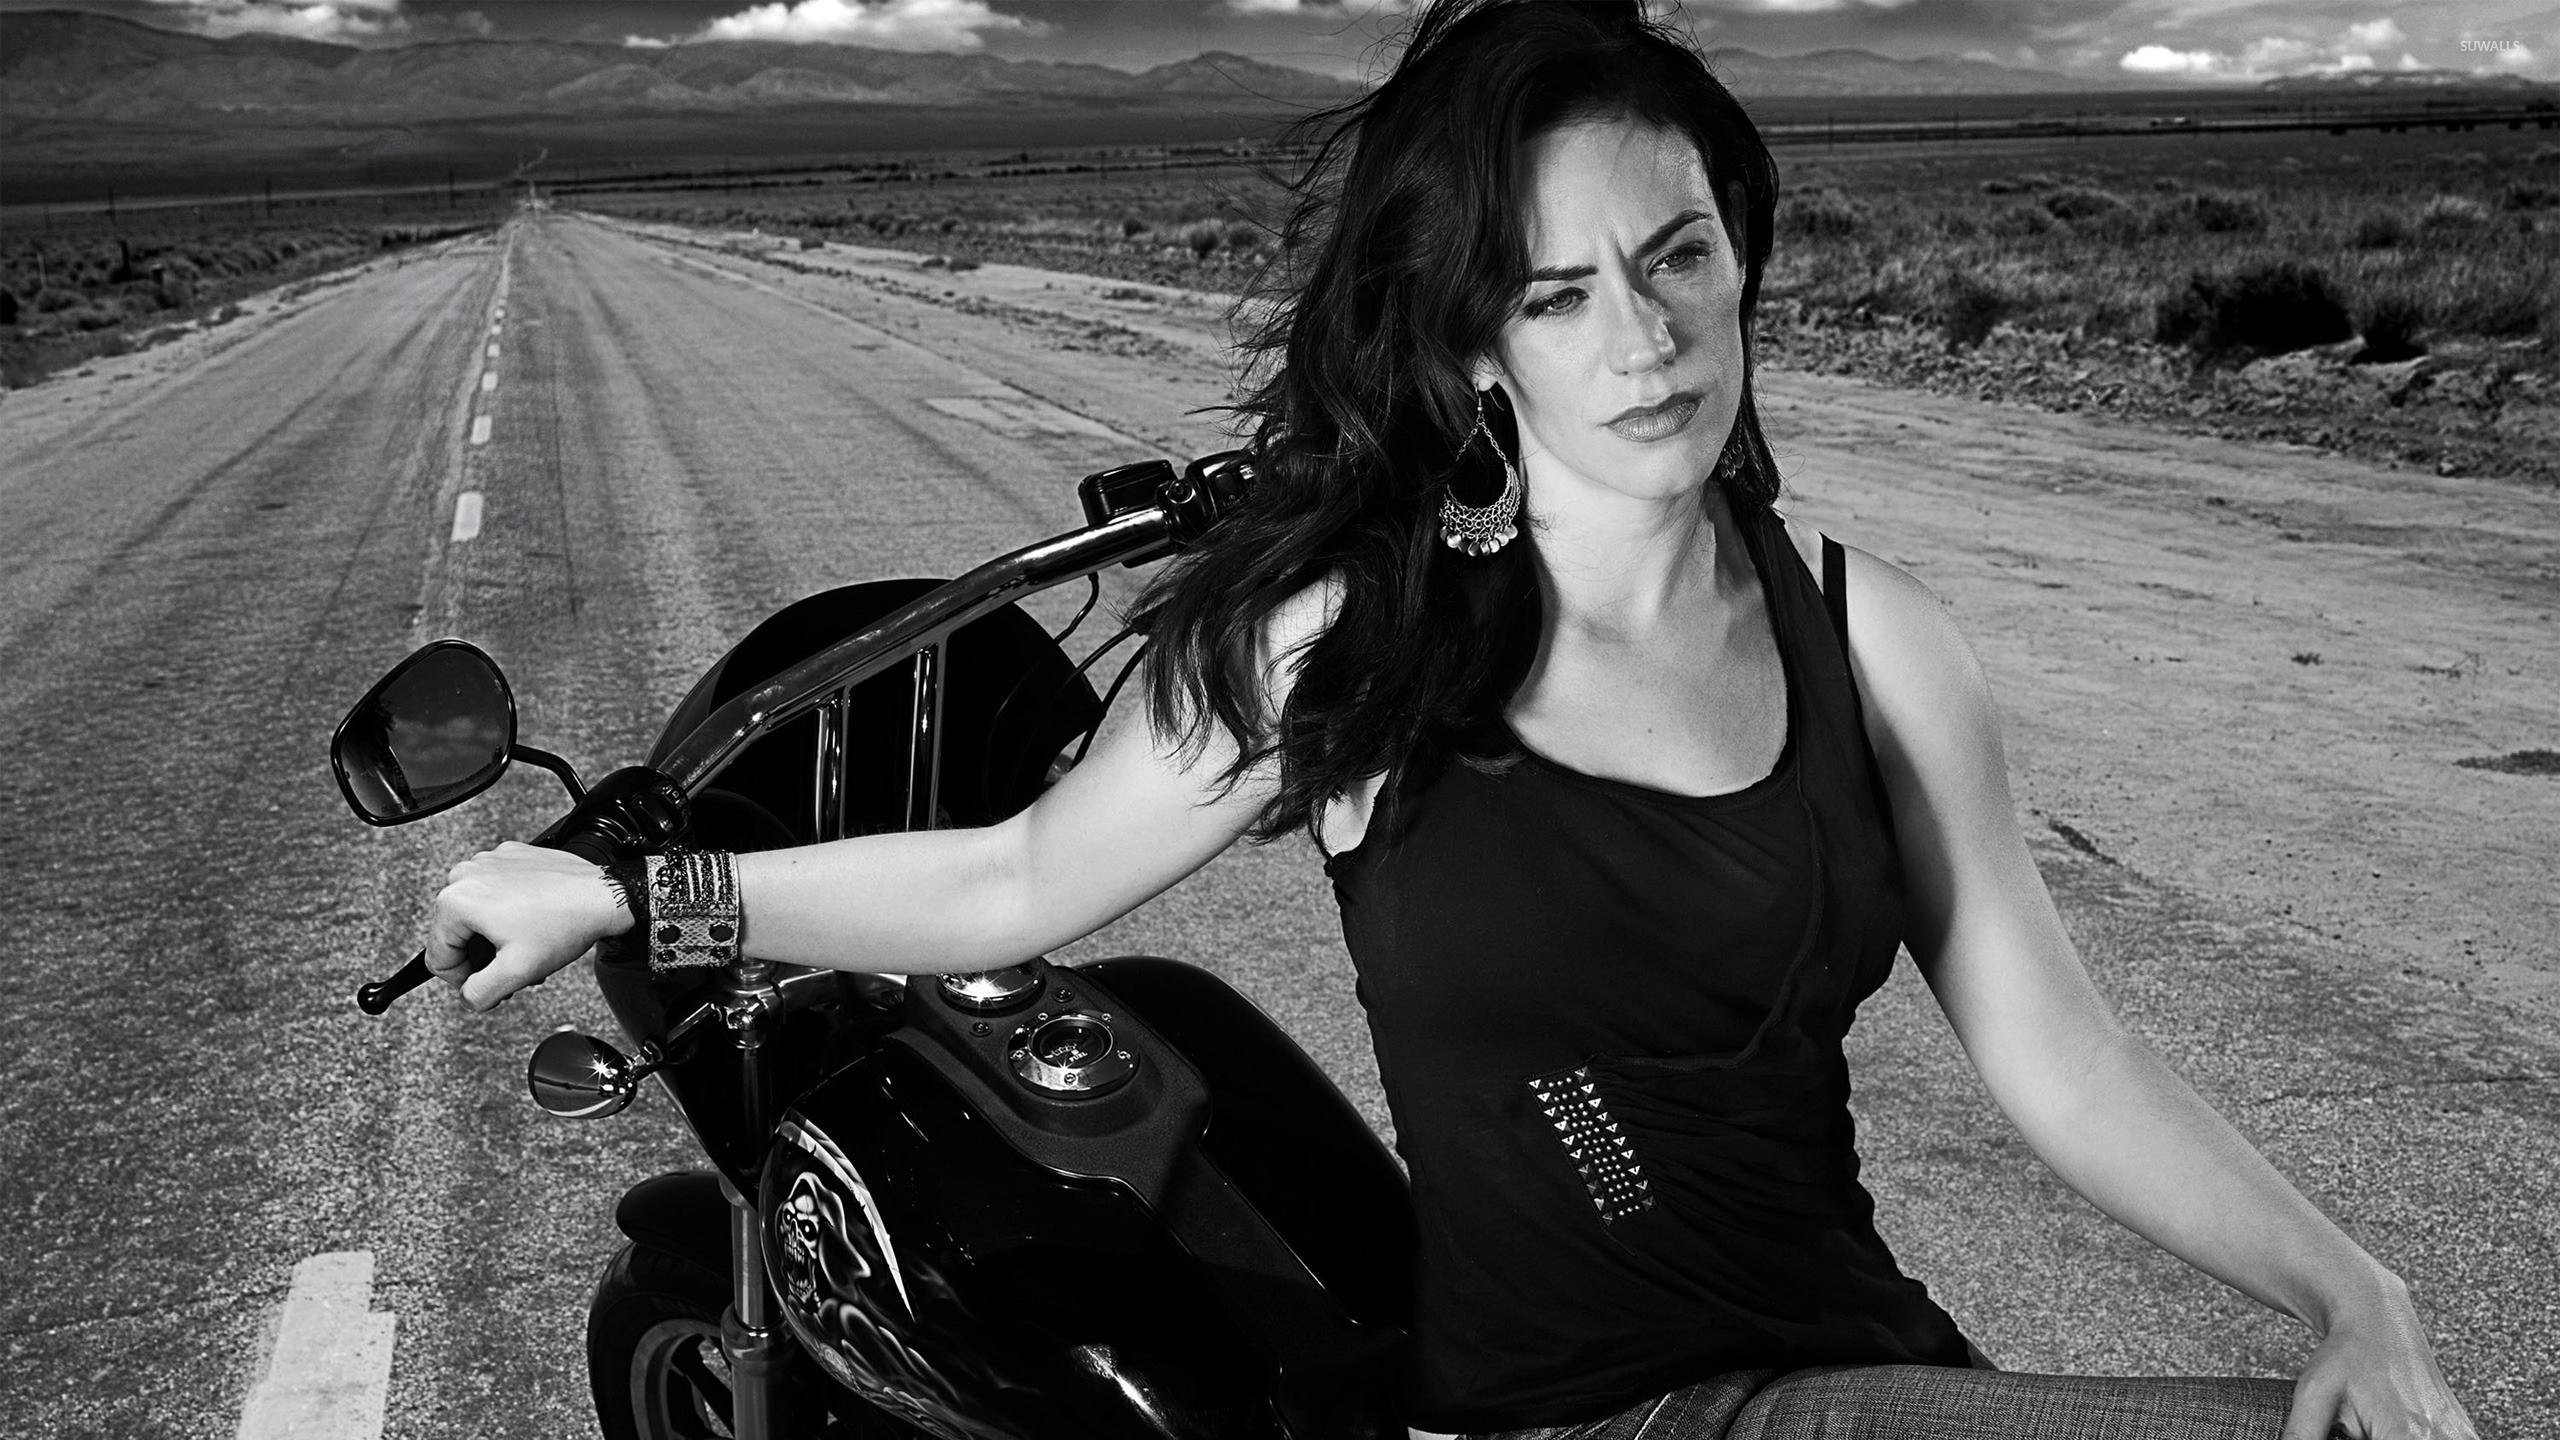 Tara Knowles Sons Of Anarchy Wallpaper Tv Show Wallpapers 24522